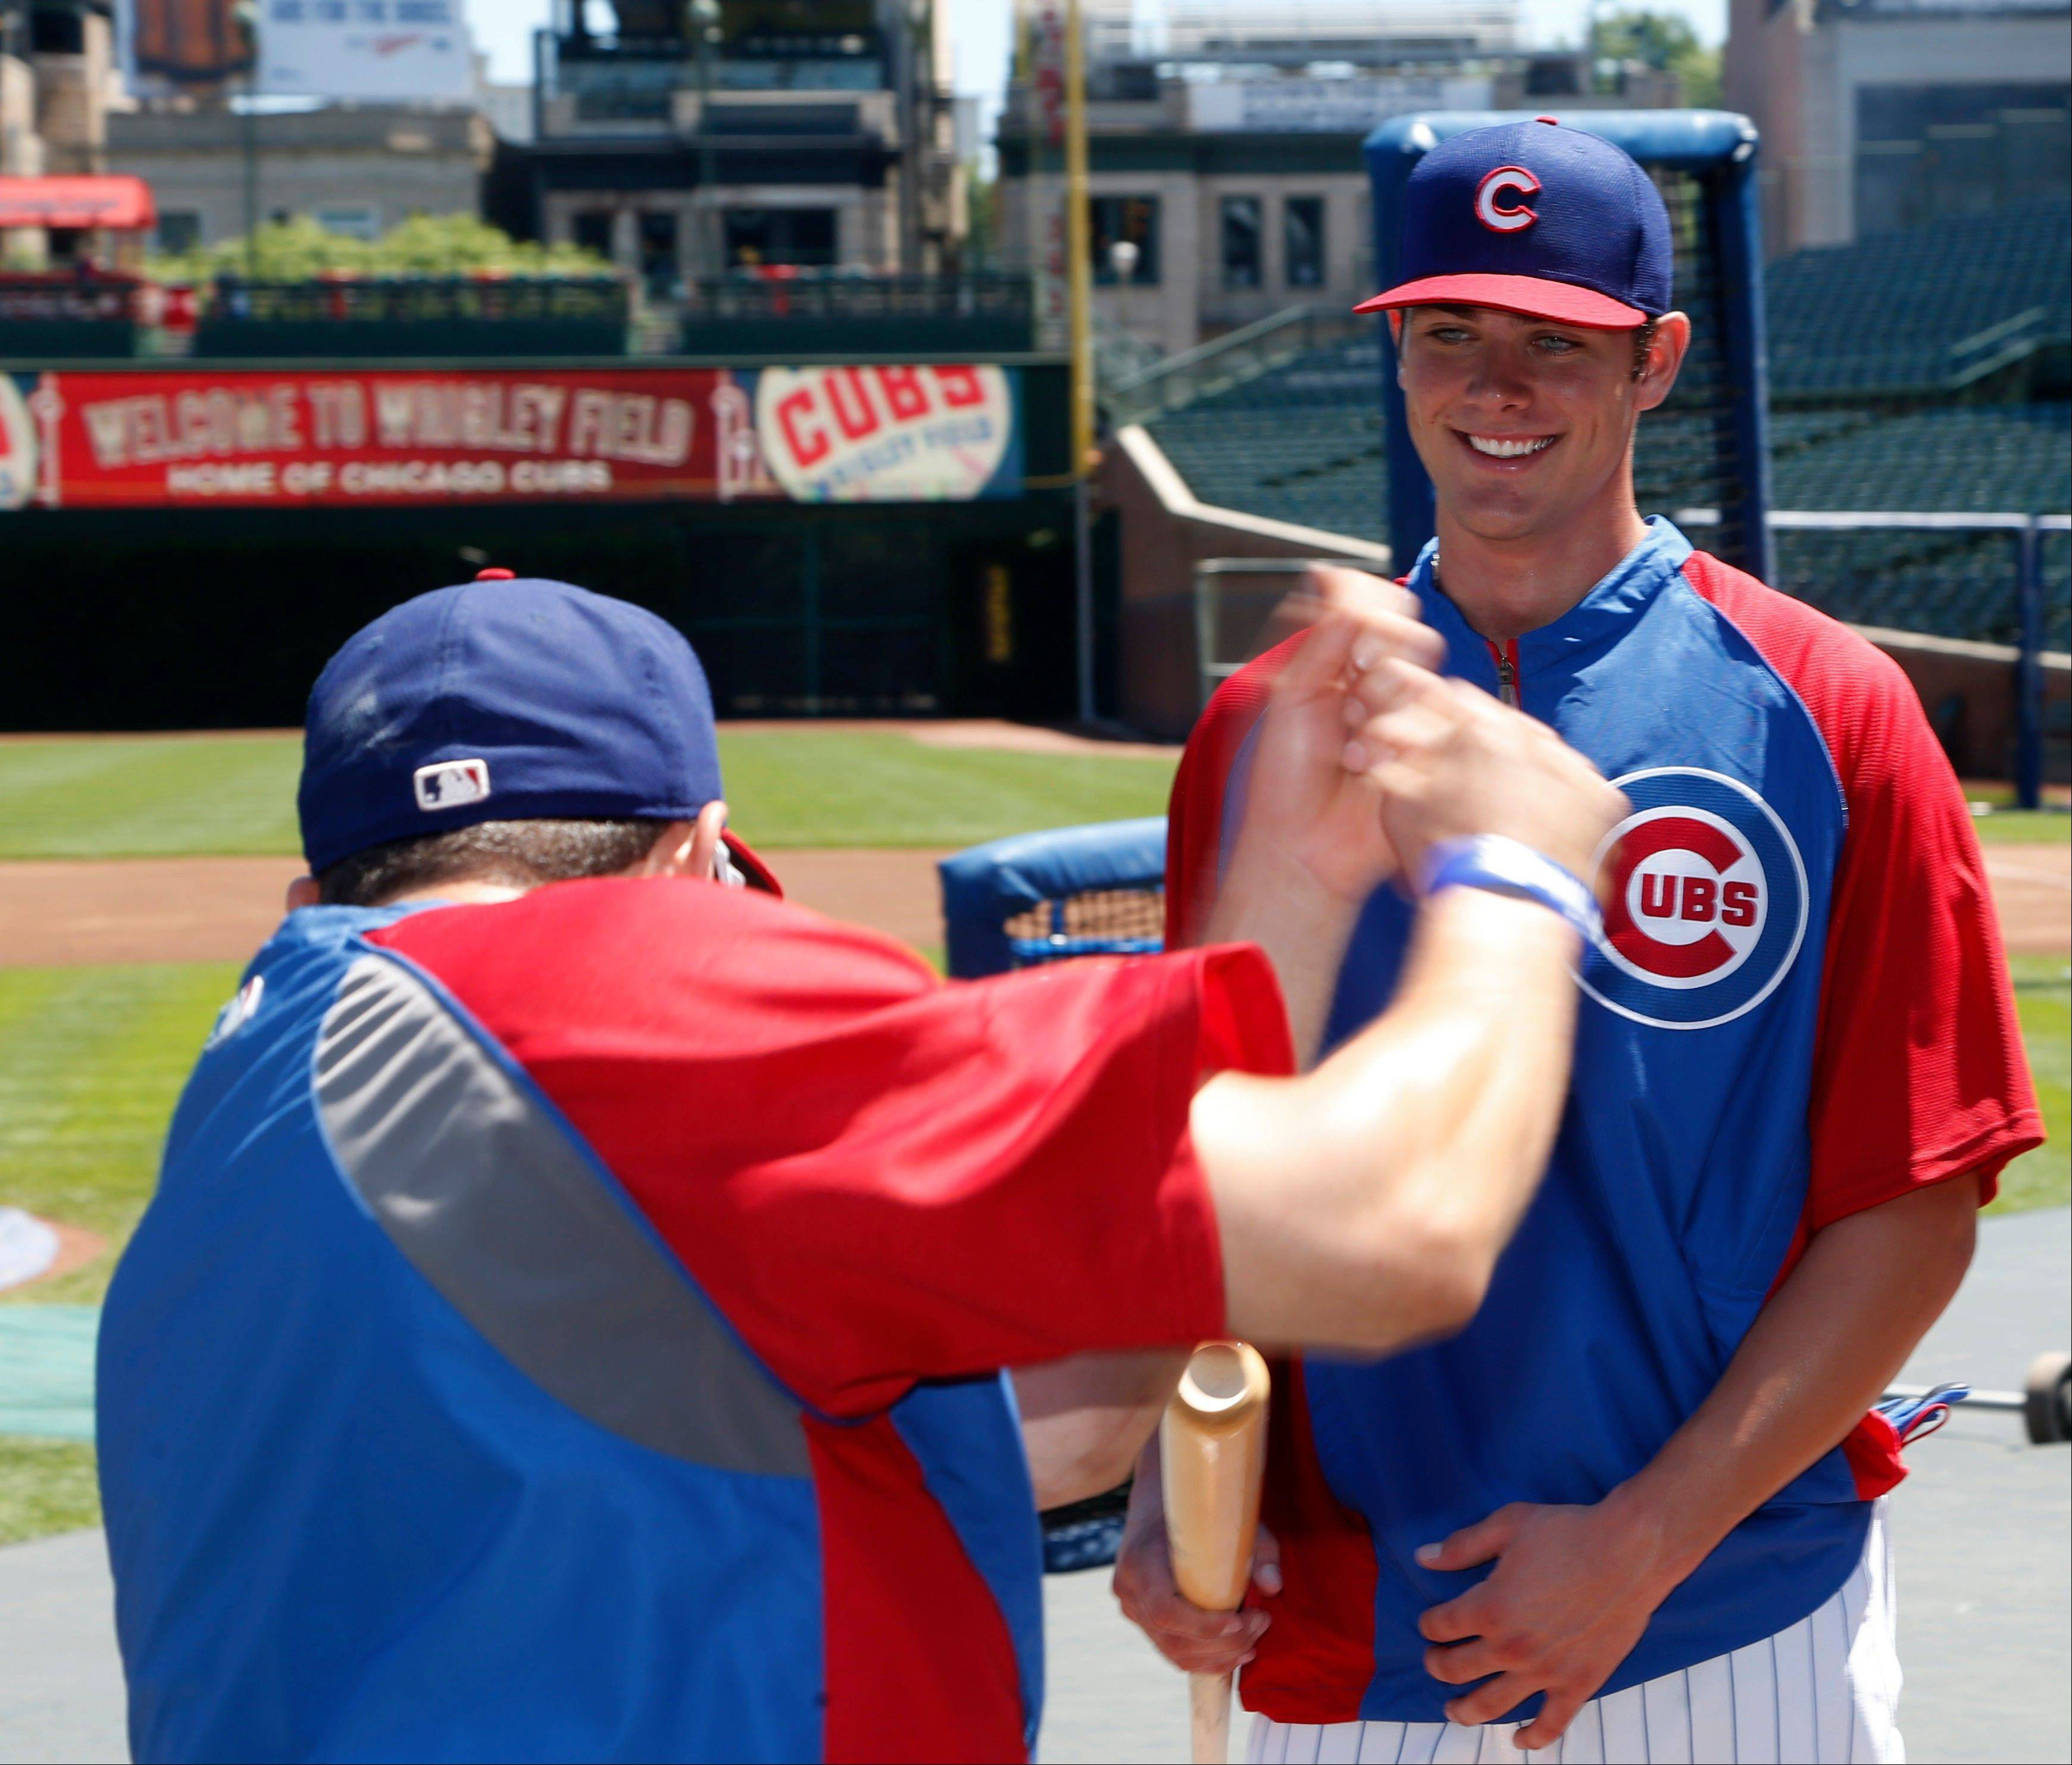 Kris Bryant watches as center fielder David DeJesus talks about batting at Wrigley Field.